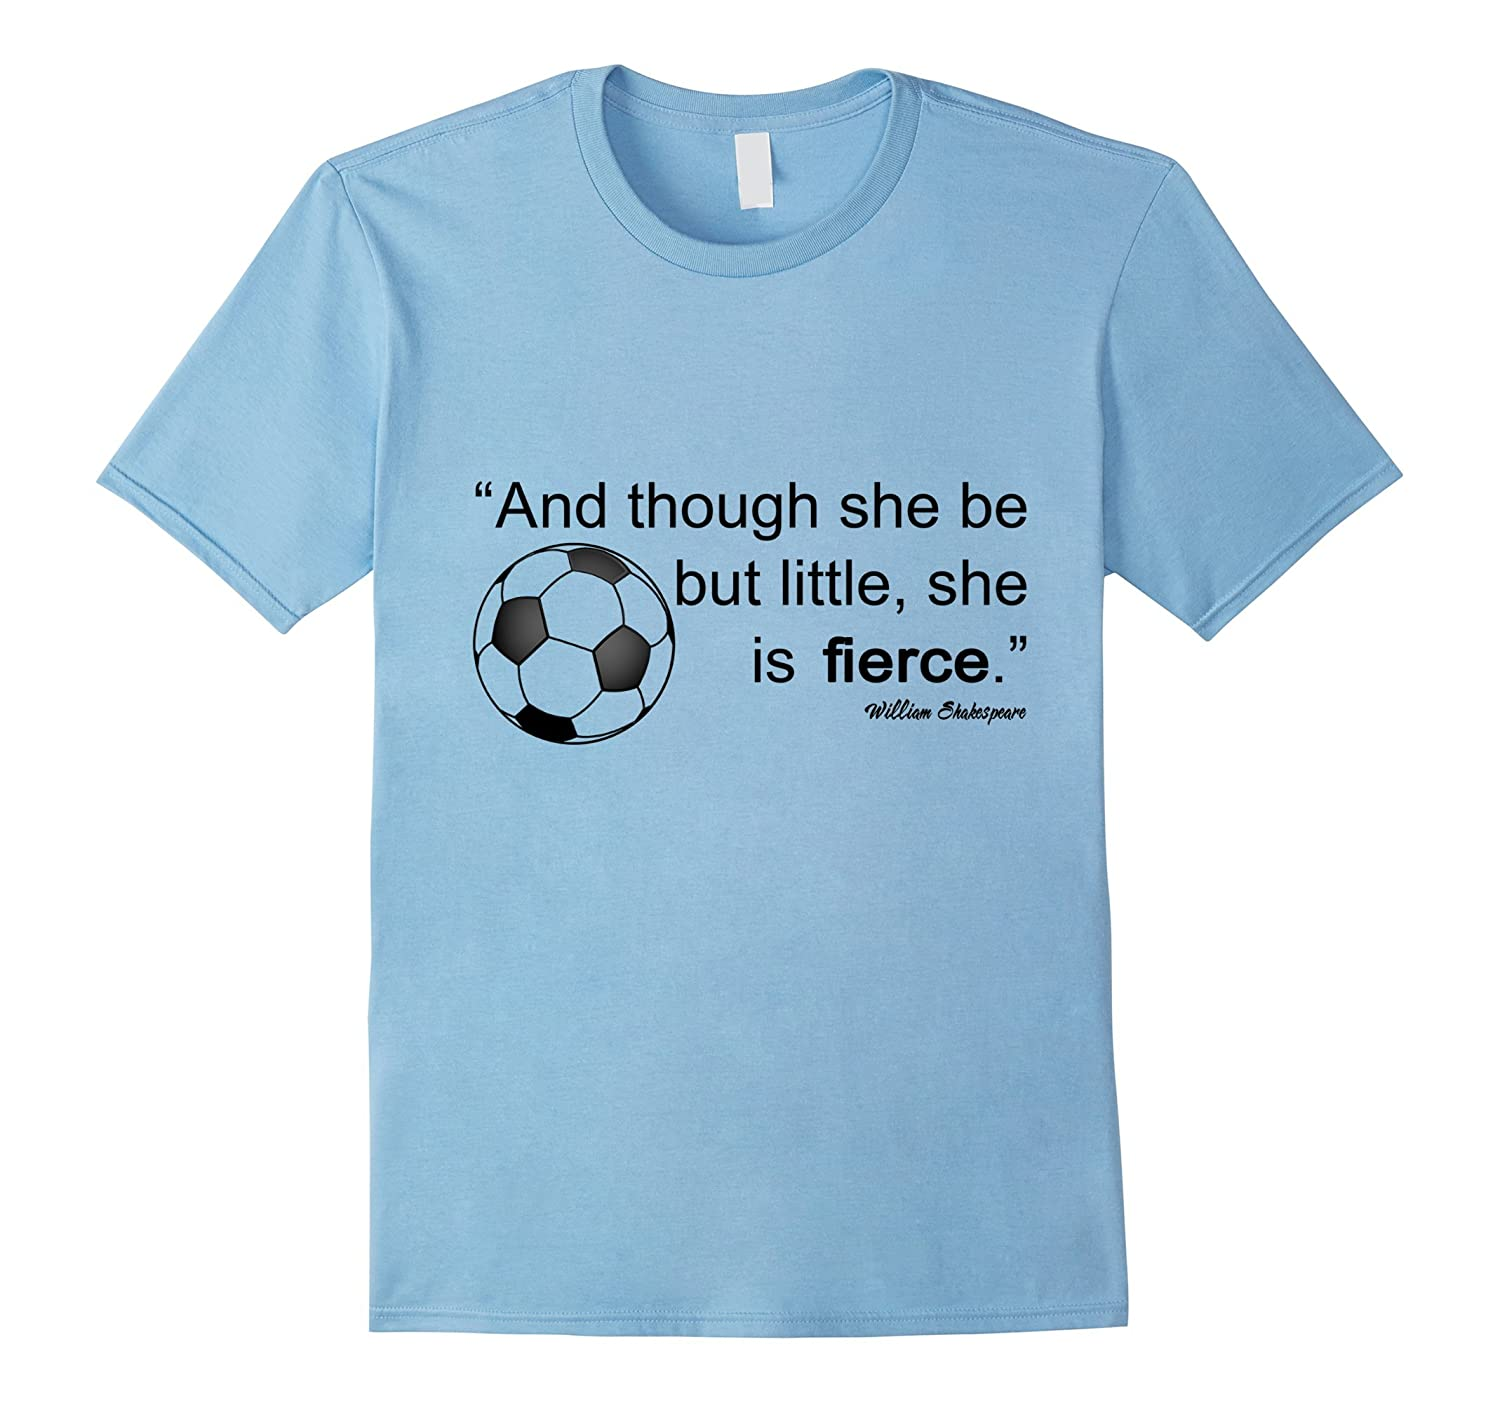 T shirts for soccer girls soccer players goatstee for Soccer girl problems t shirts